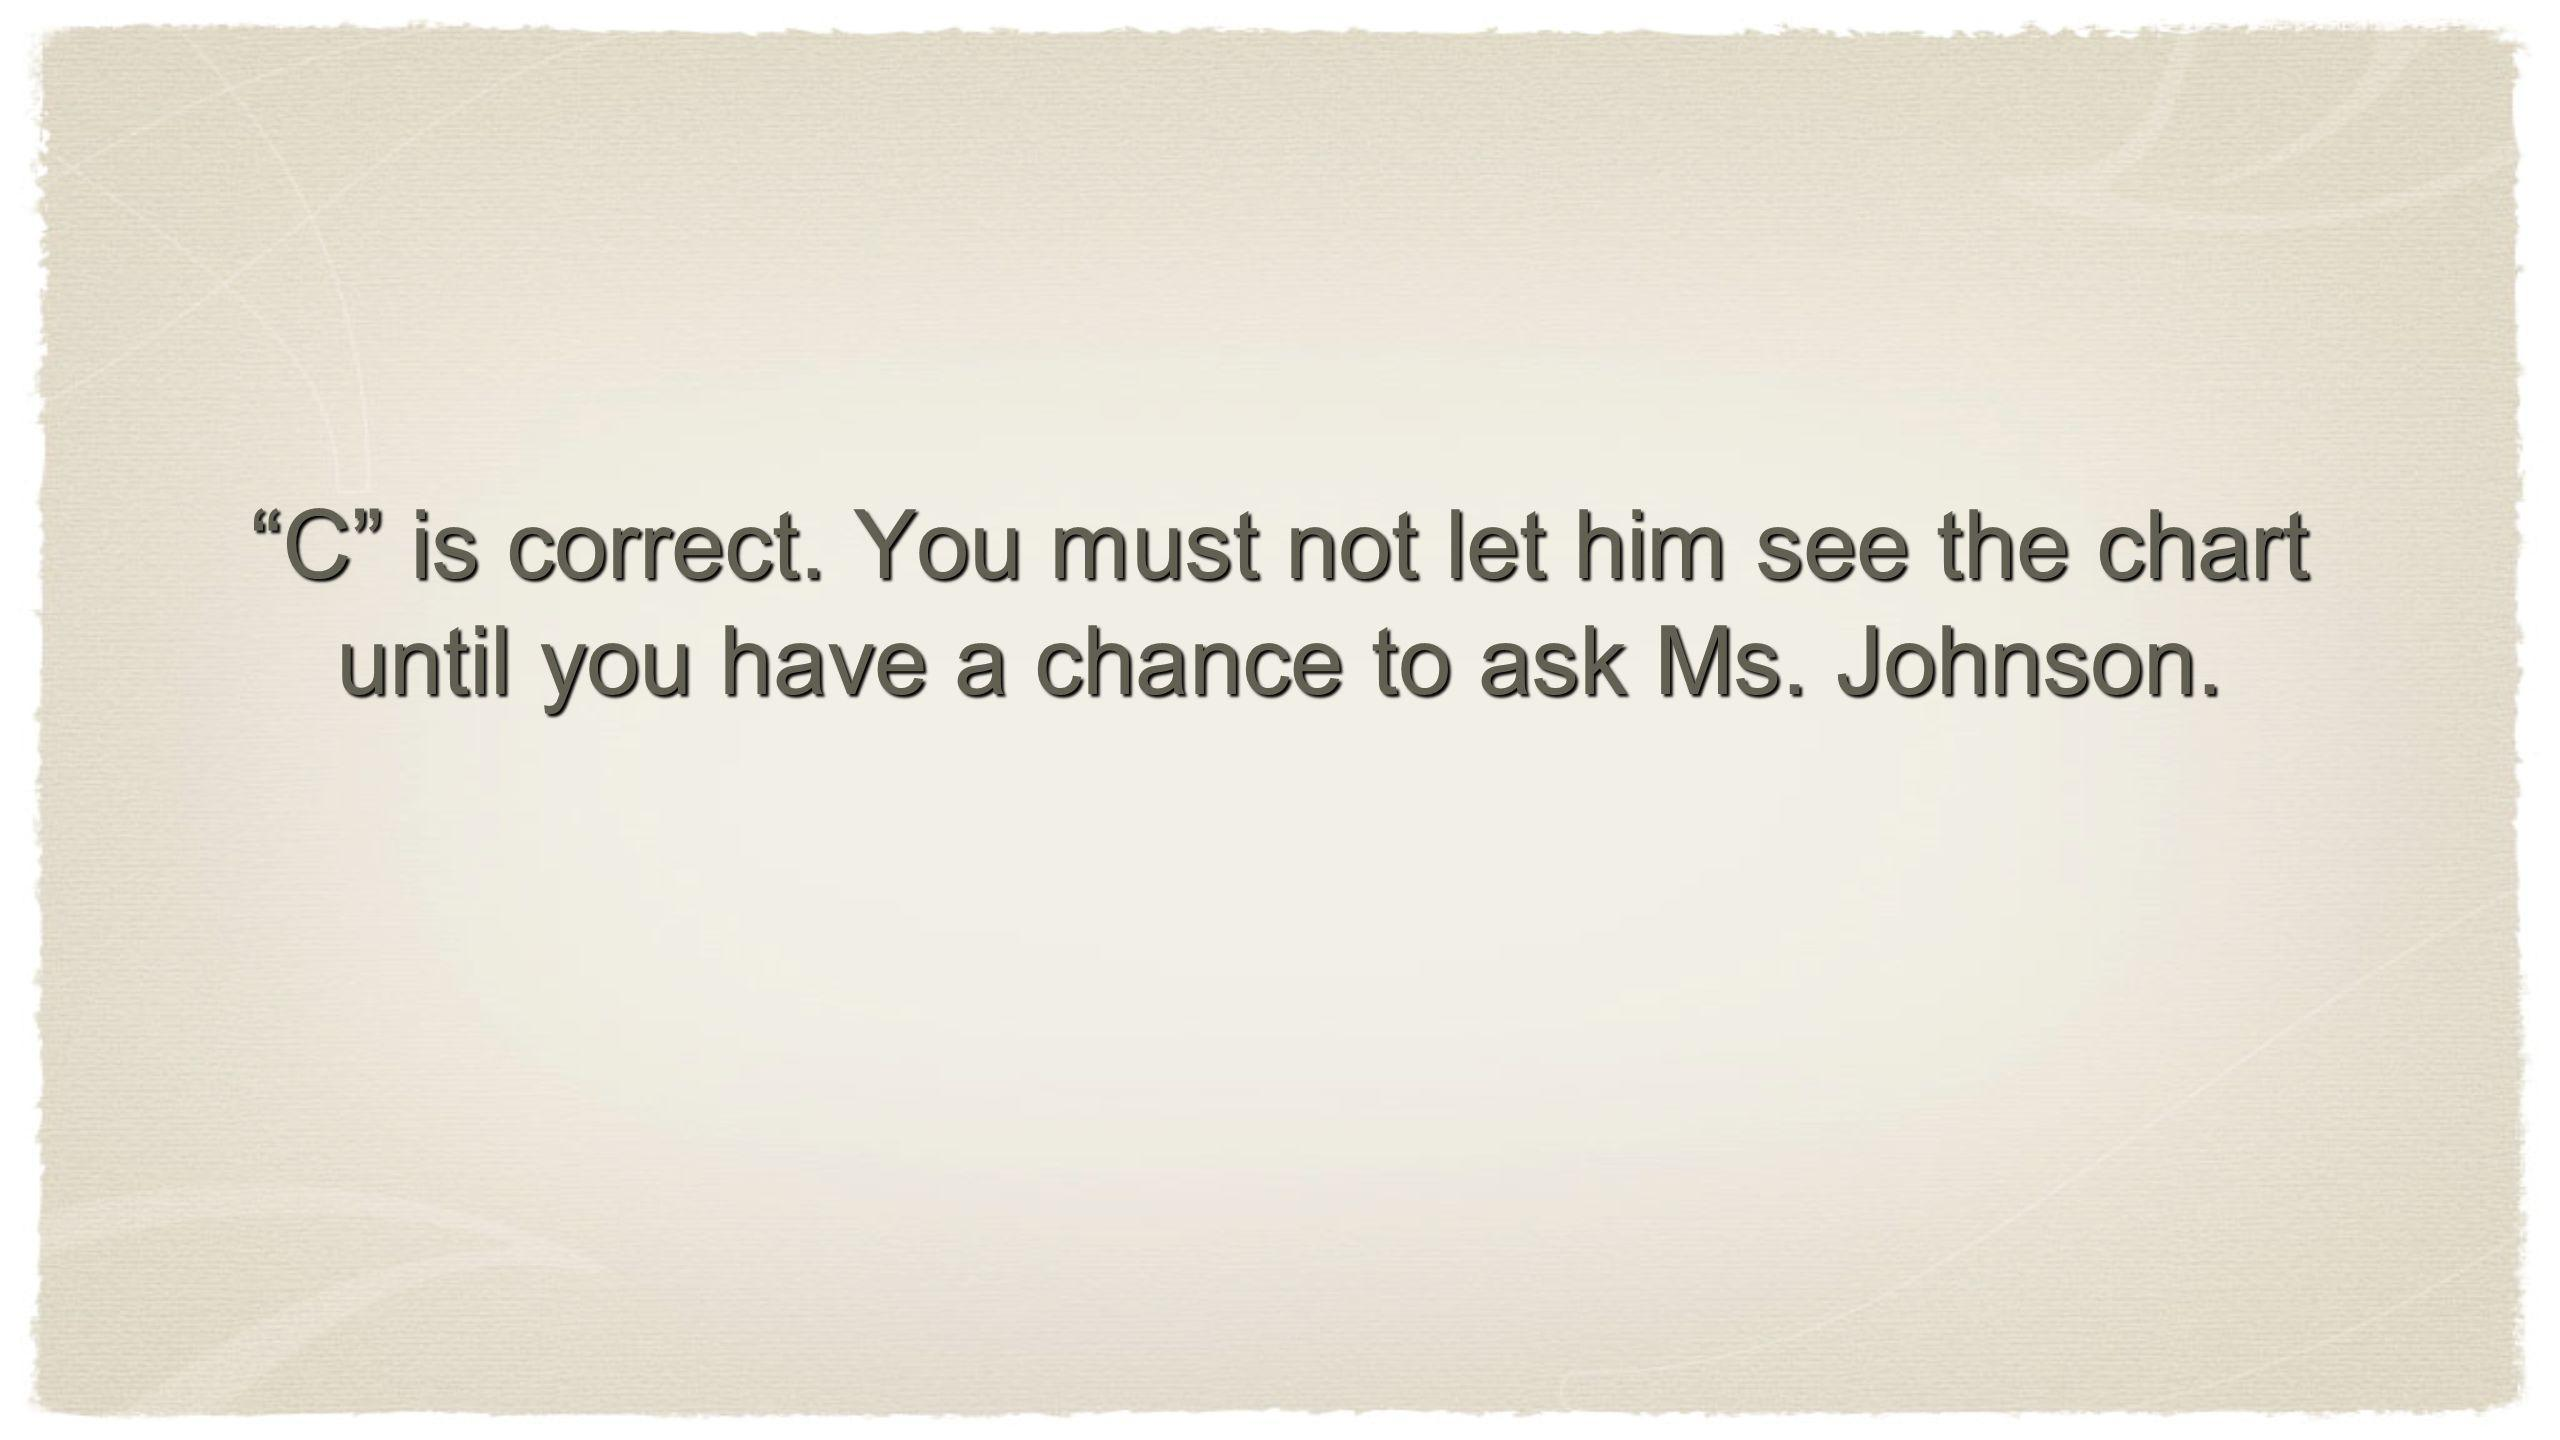 C is correct. You must not let him see the chart until you have a chance to ask Ms. Johnson.